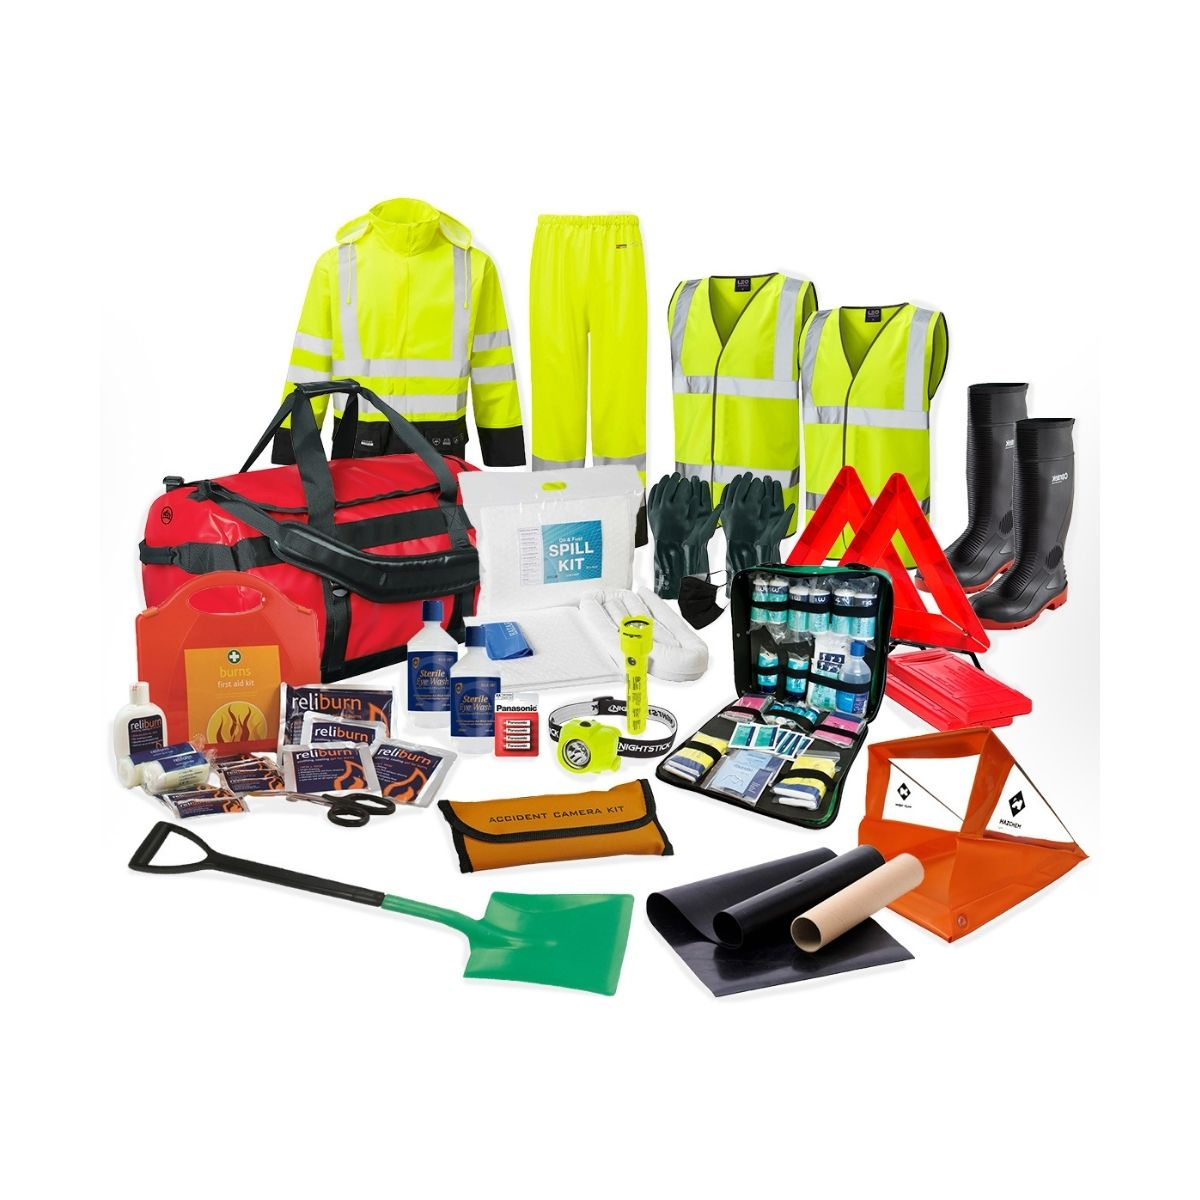 DK0036 Petrochemical Emergency Response Kit